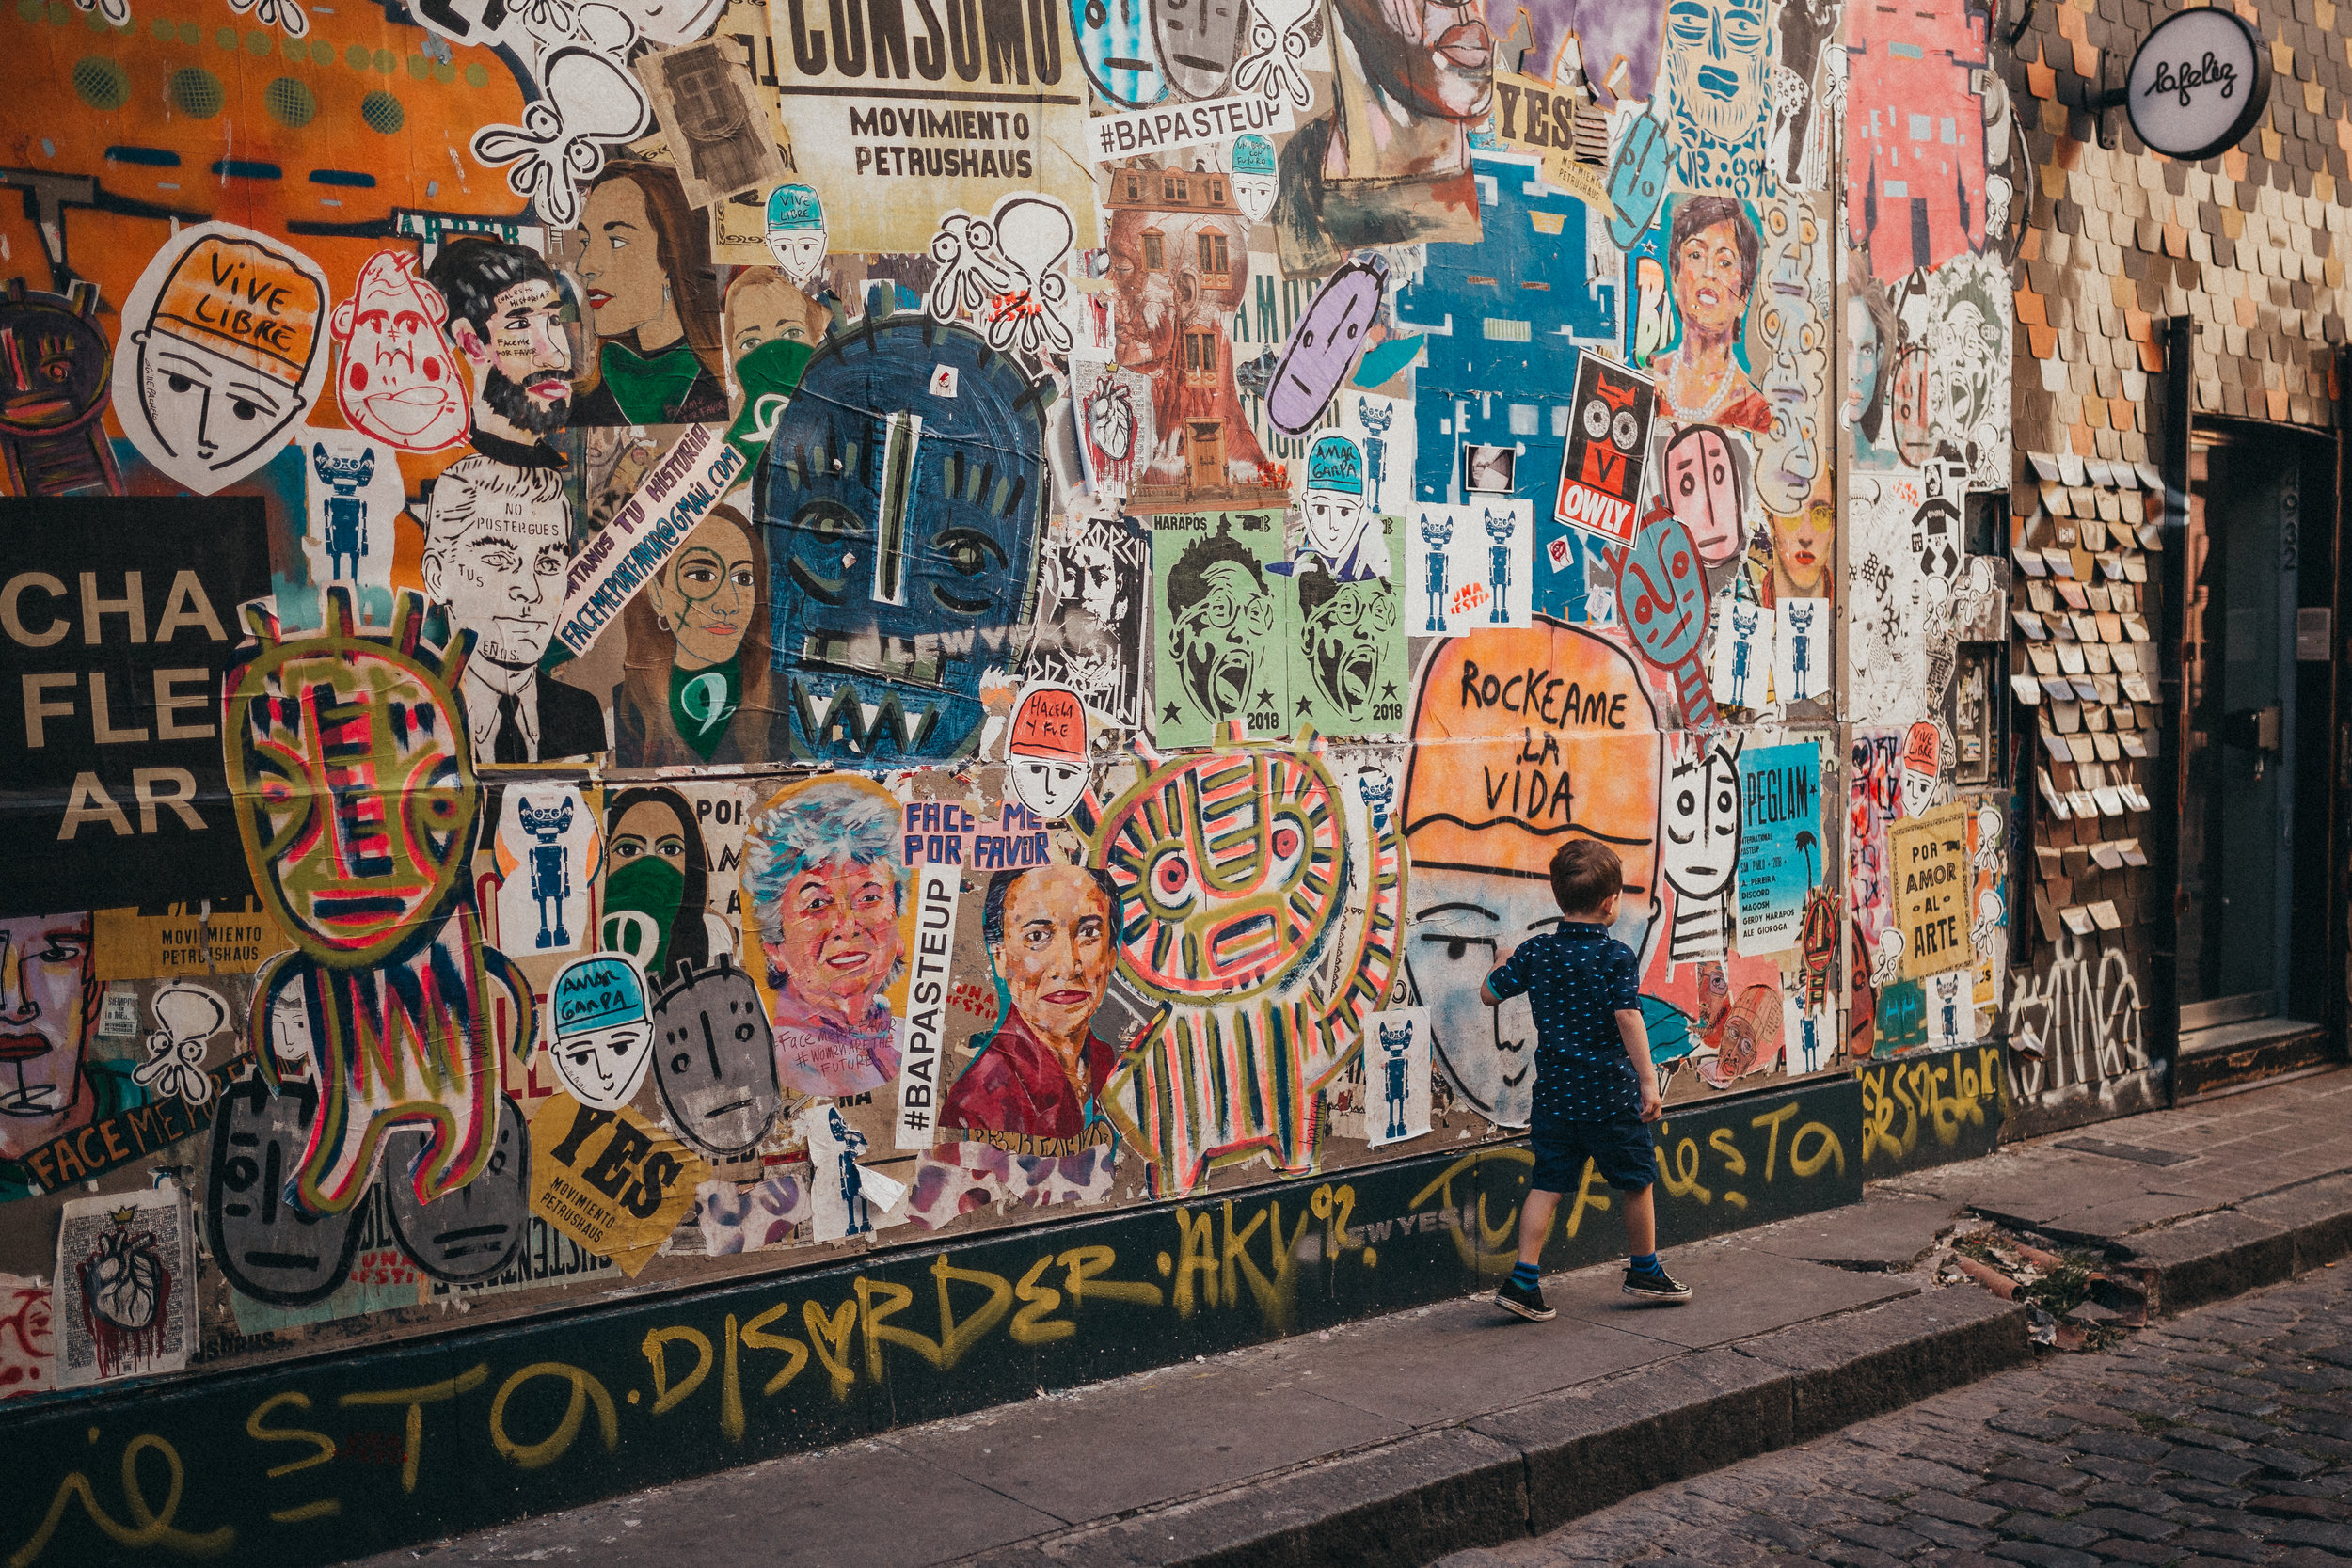 Bosques de Palermo and Street Art Buenos Aires-113.jpg